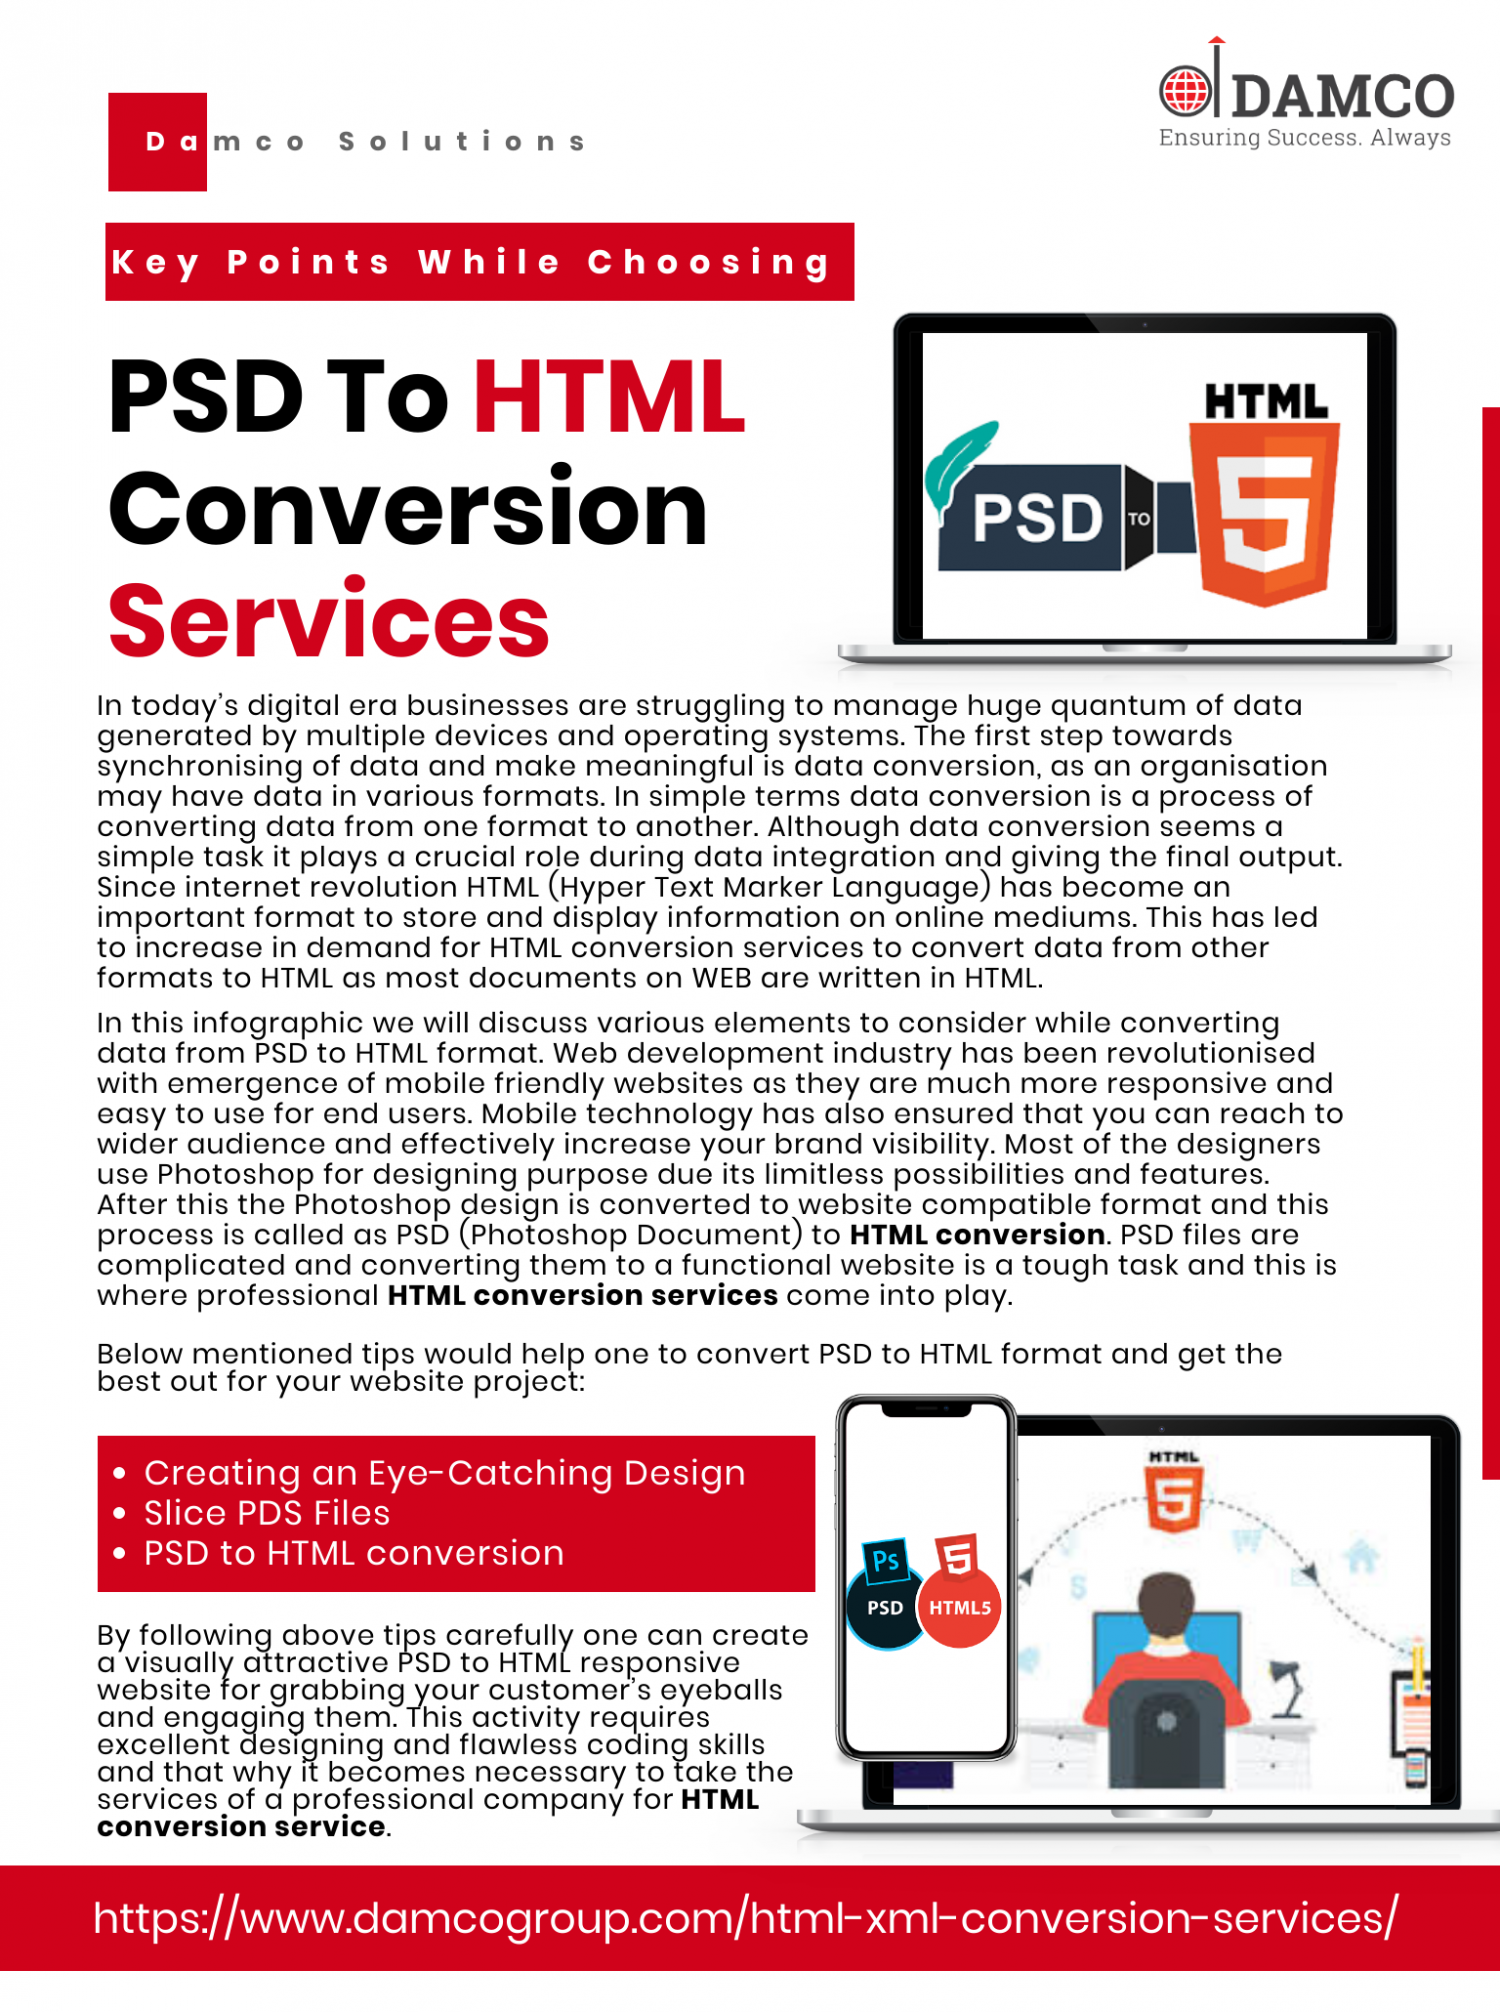 Key Points While Choosing PSD To HTML Conversion Services Infographic